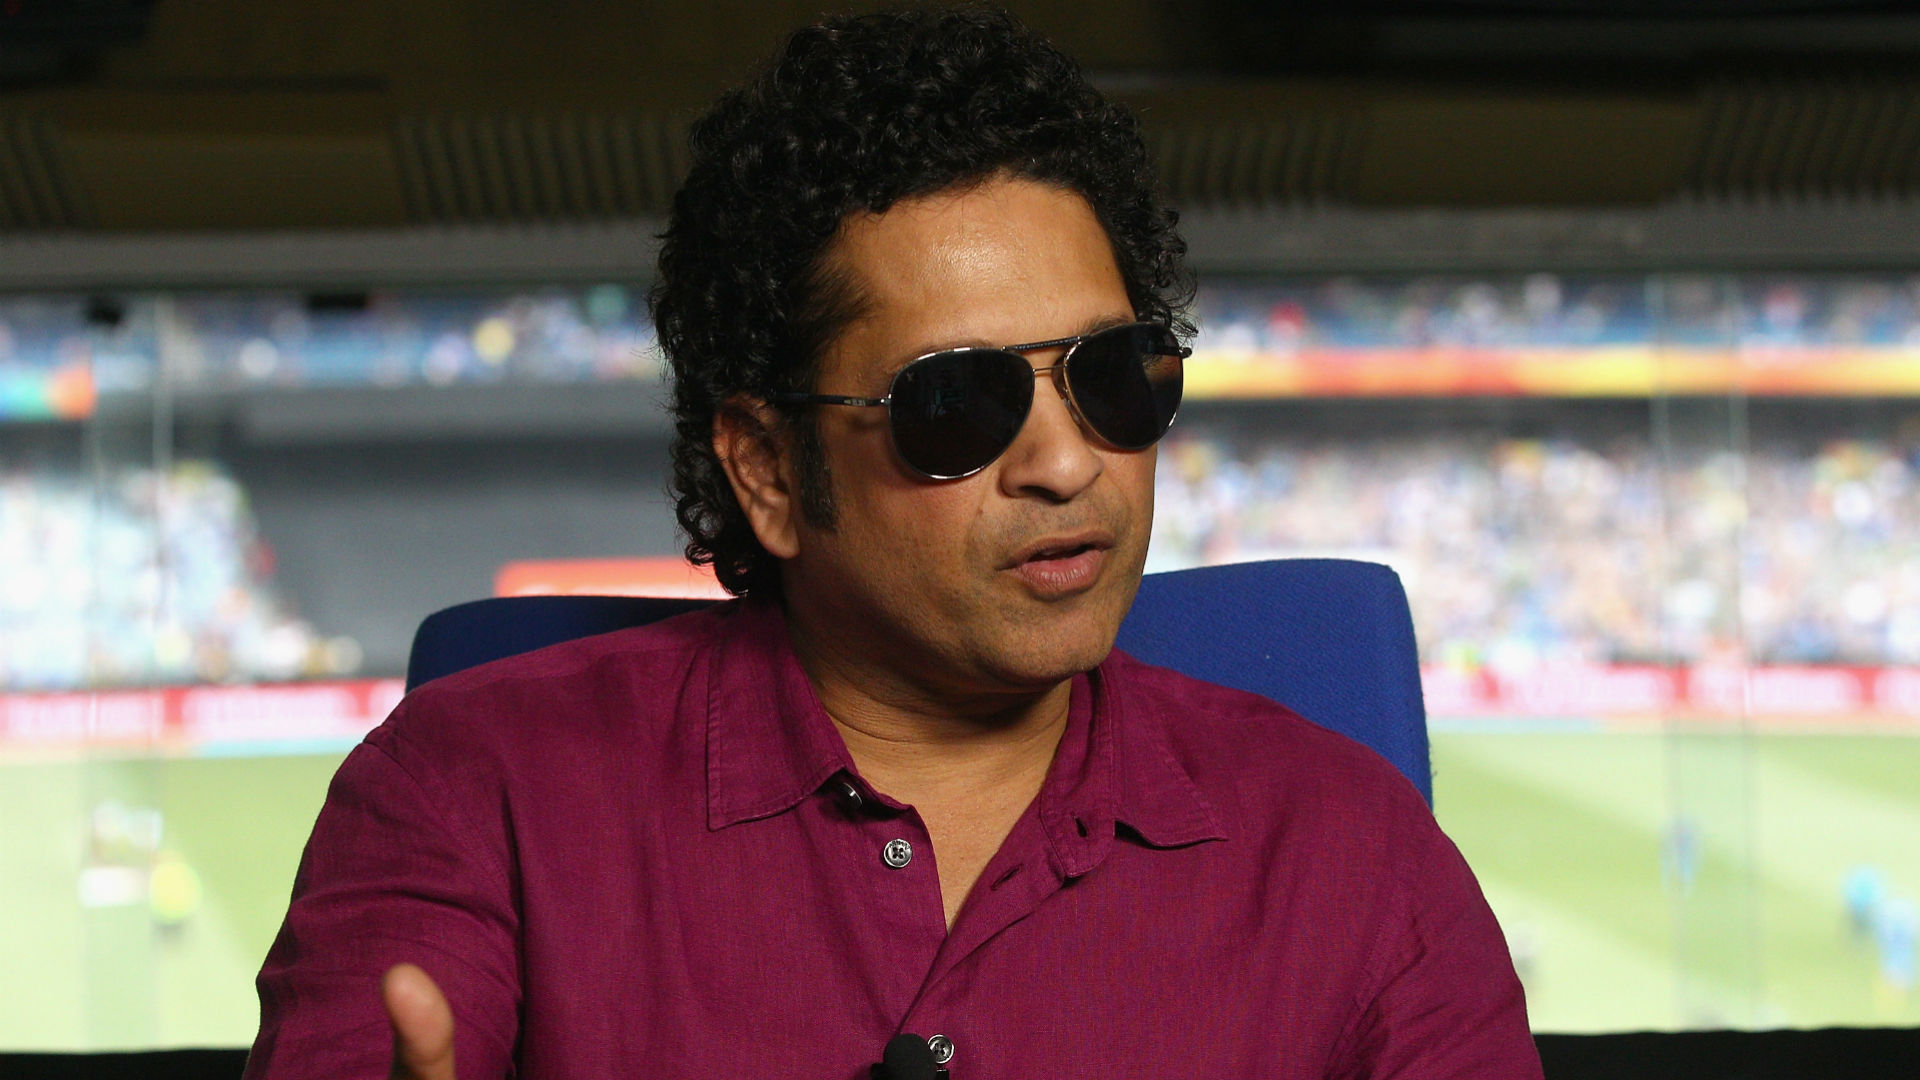 SachinTendulkar - cropped